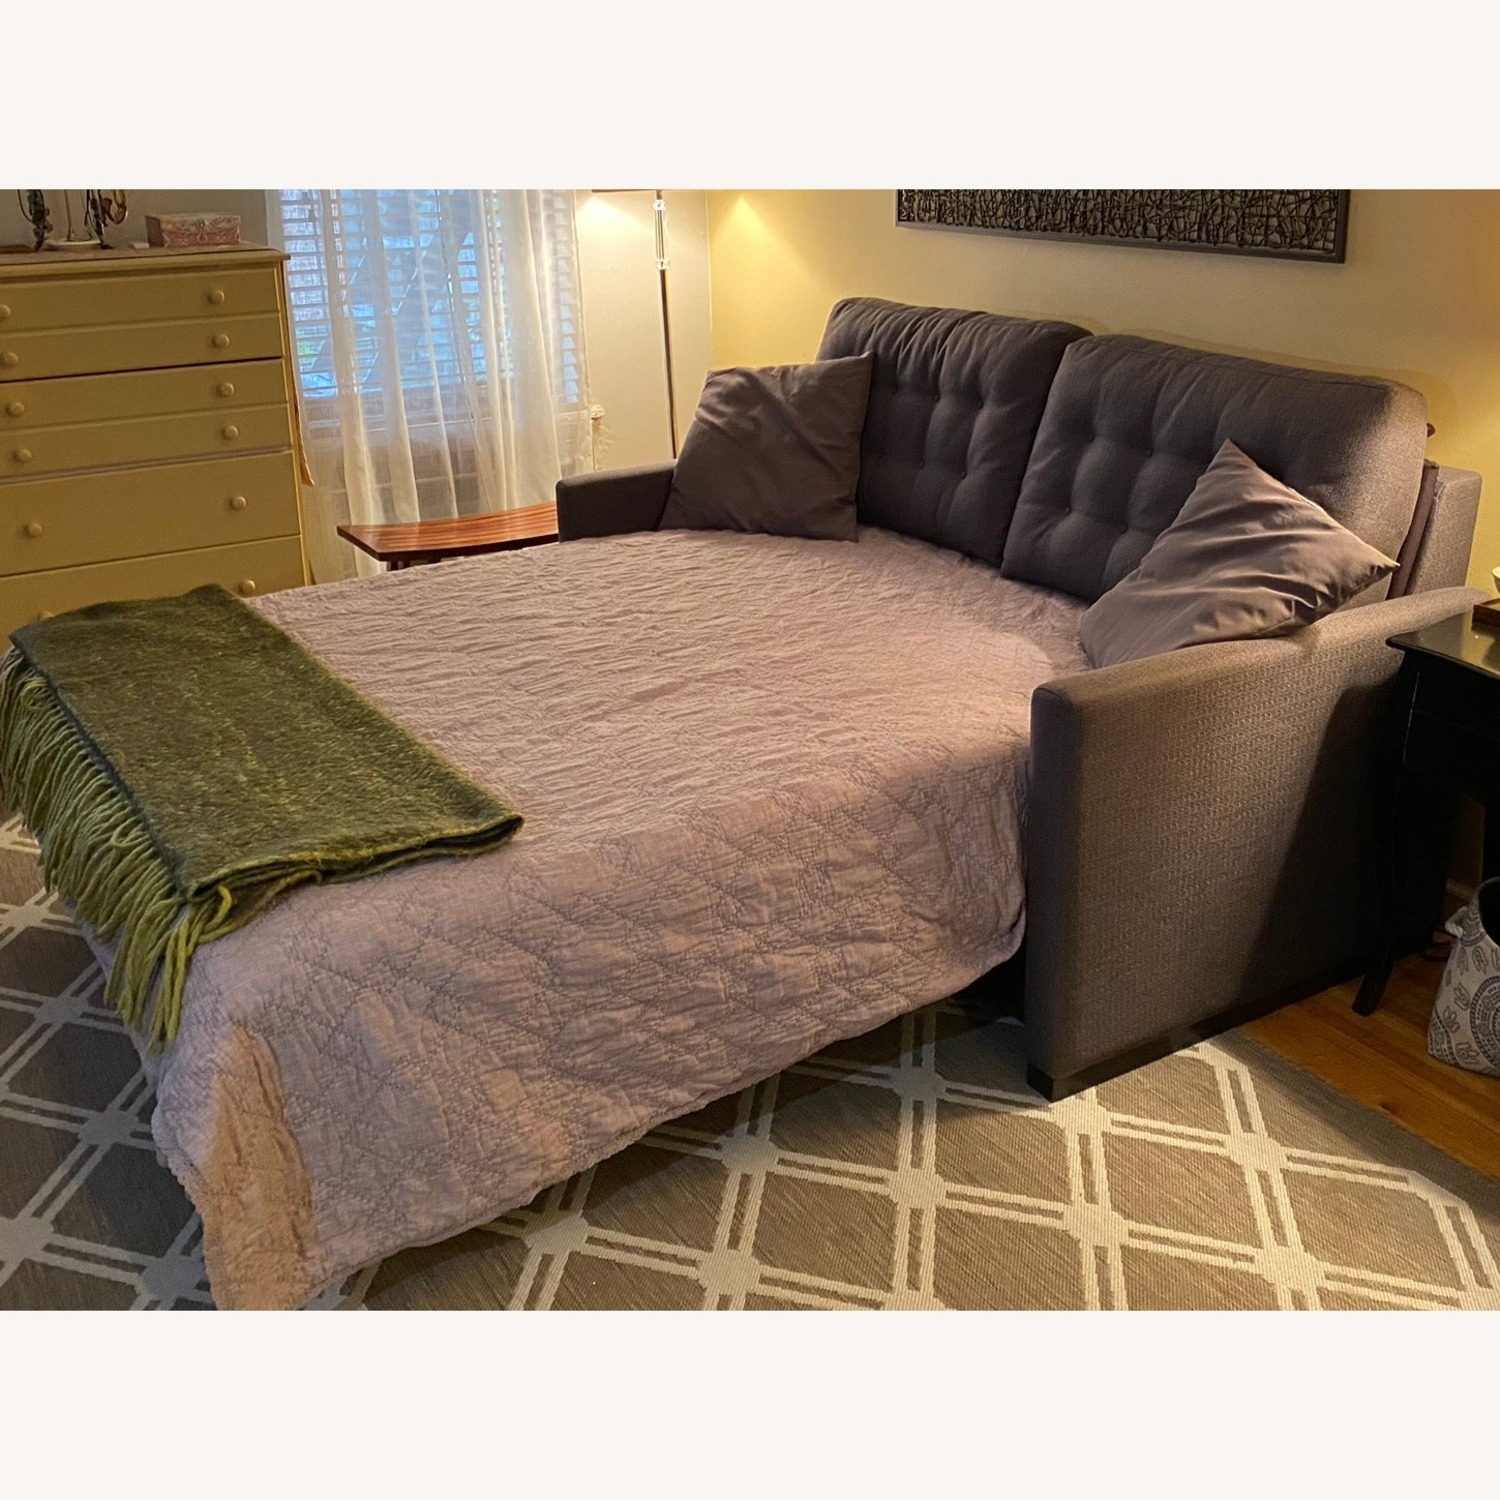 American Leather Queen Size Sleeper-Sofa - image-4